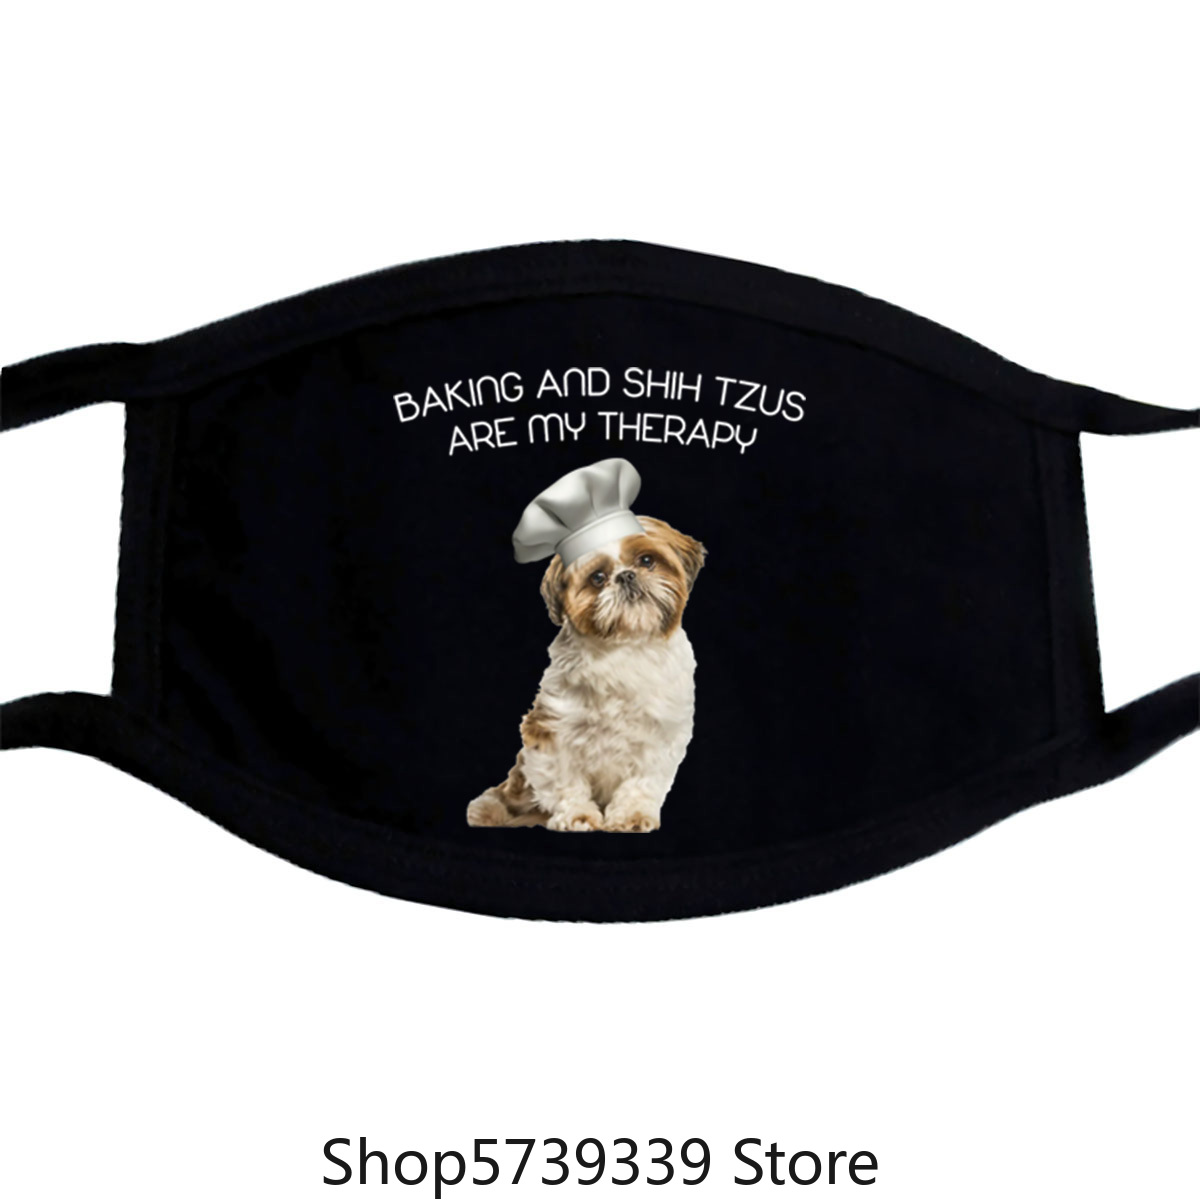 Official Premium Baking And Shih Tzu Are My Therapy Gifts MotherS Day Mask